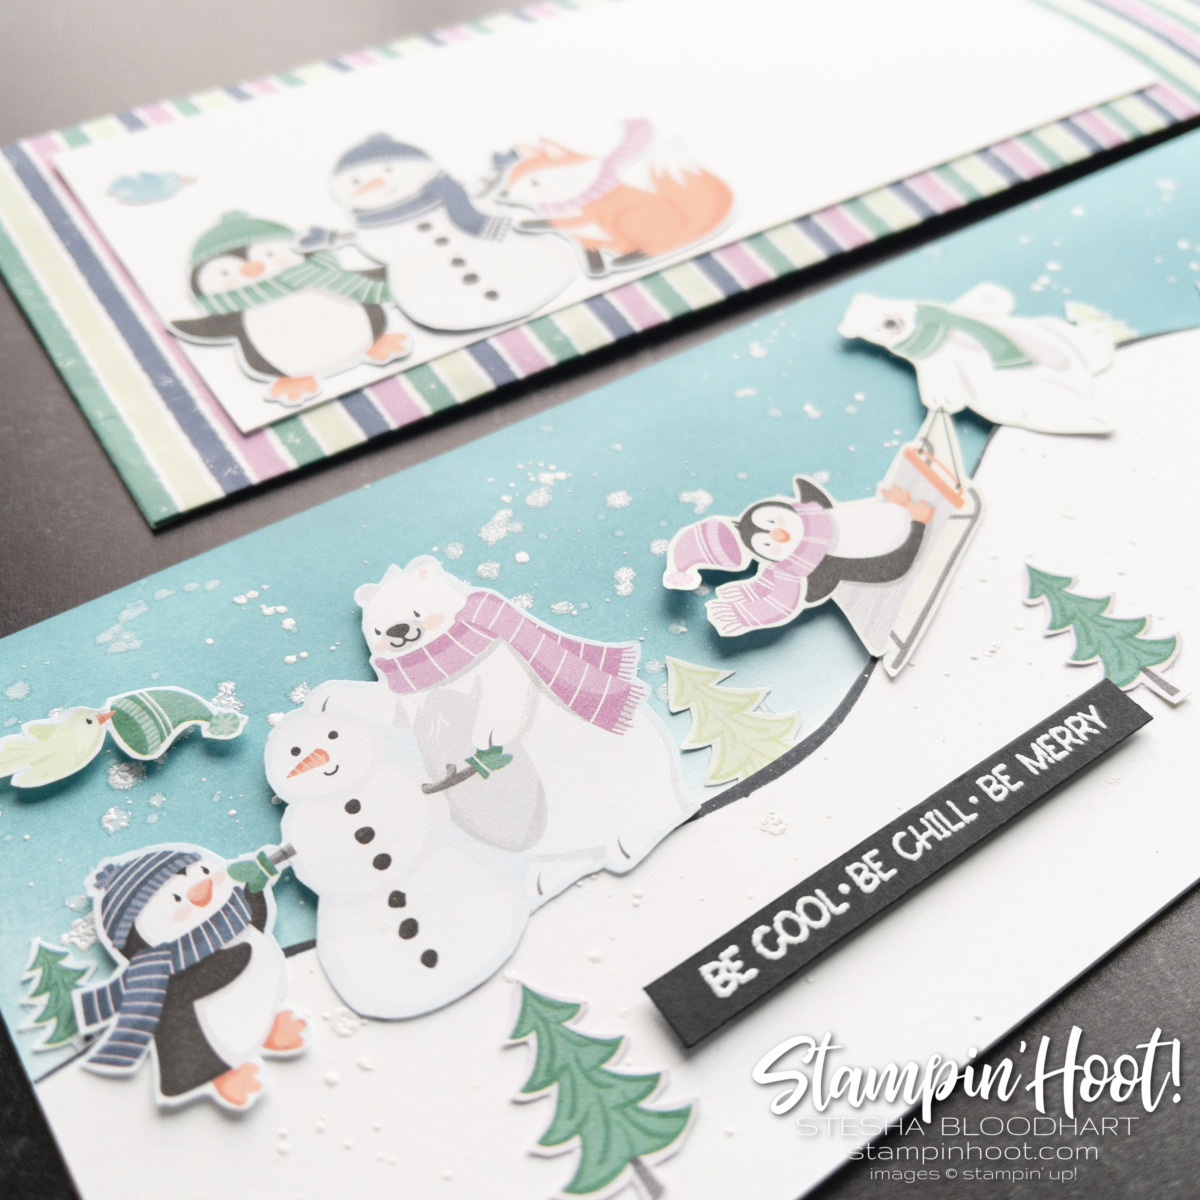 #tgifc326 Decorated Envelopes Challenge Card Slimline Card and Envelope by Stesha Bloodhart, Stampin' Hoot! Slant View